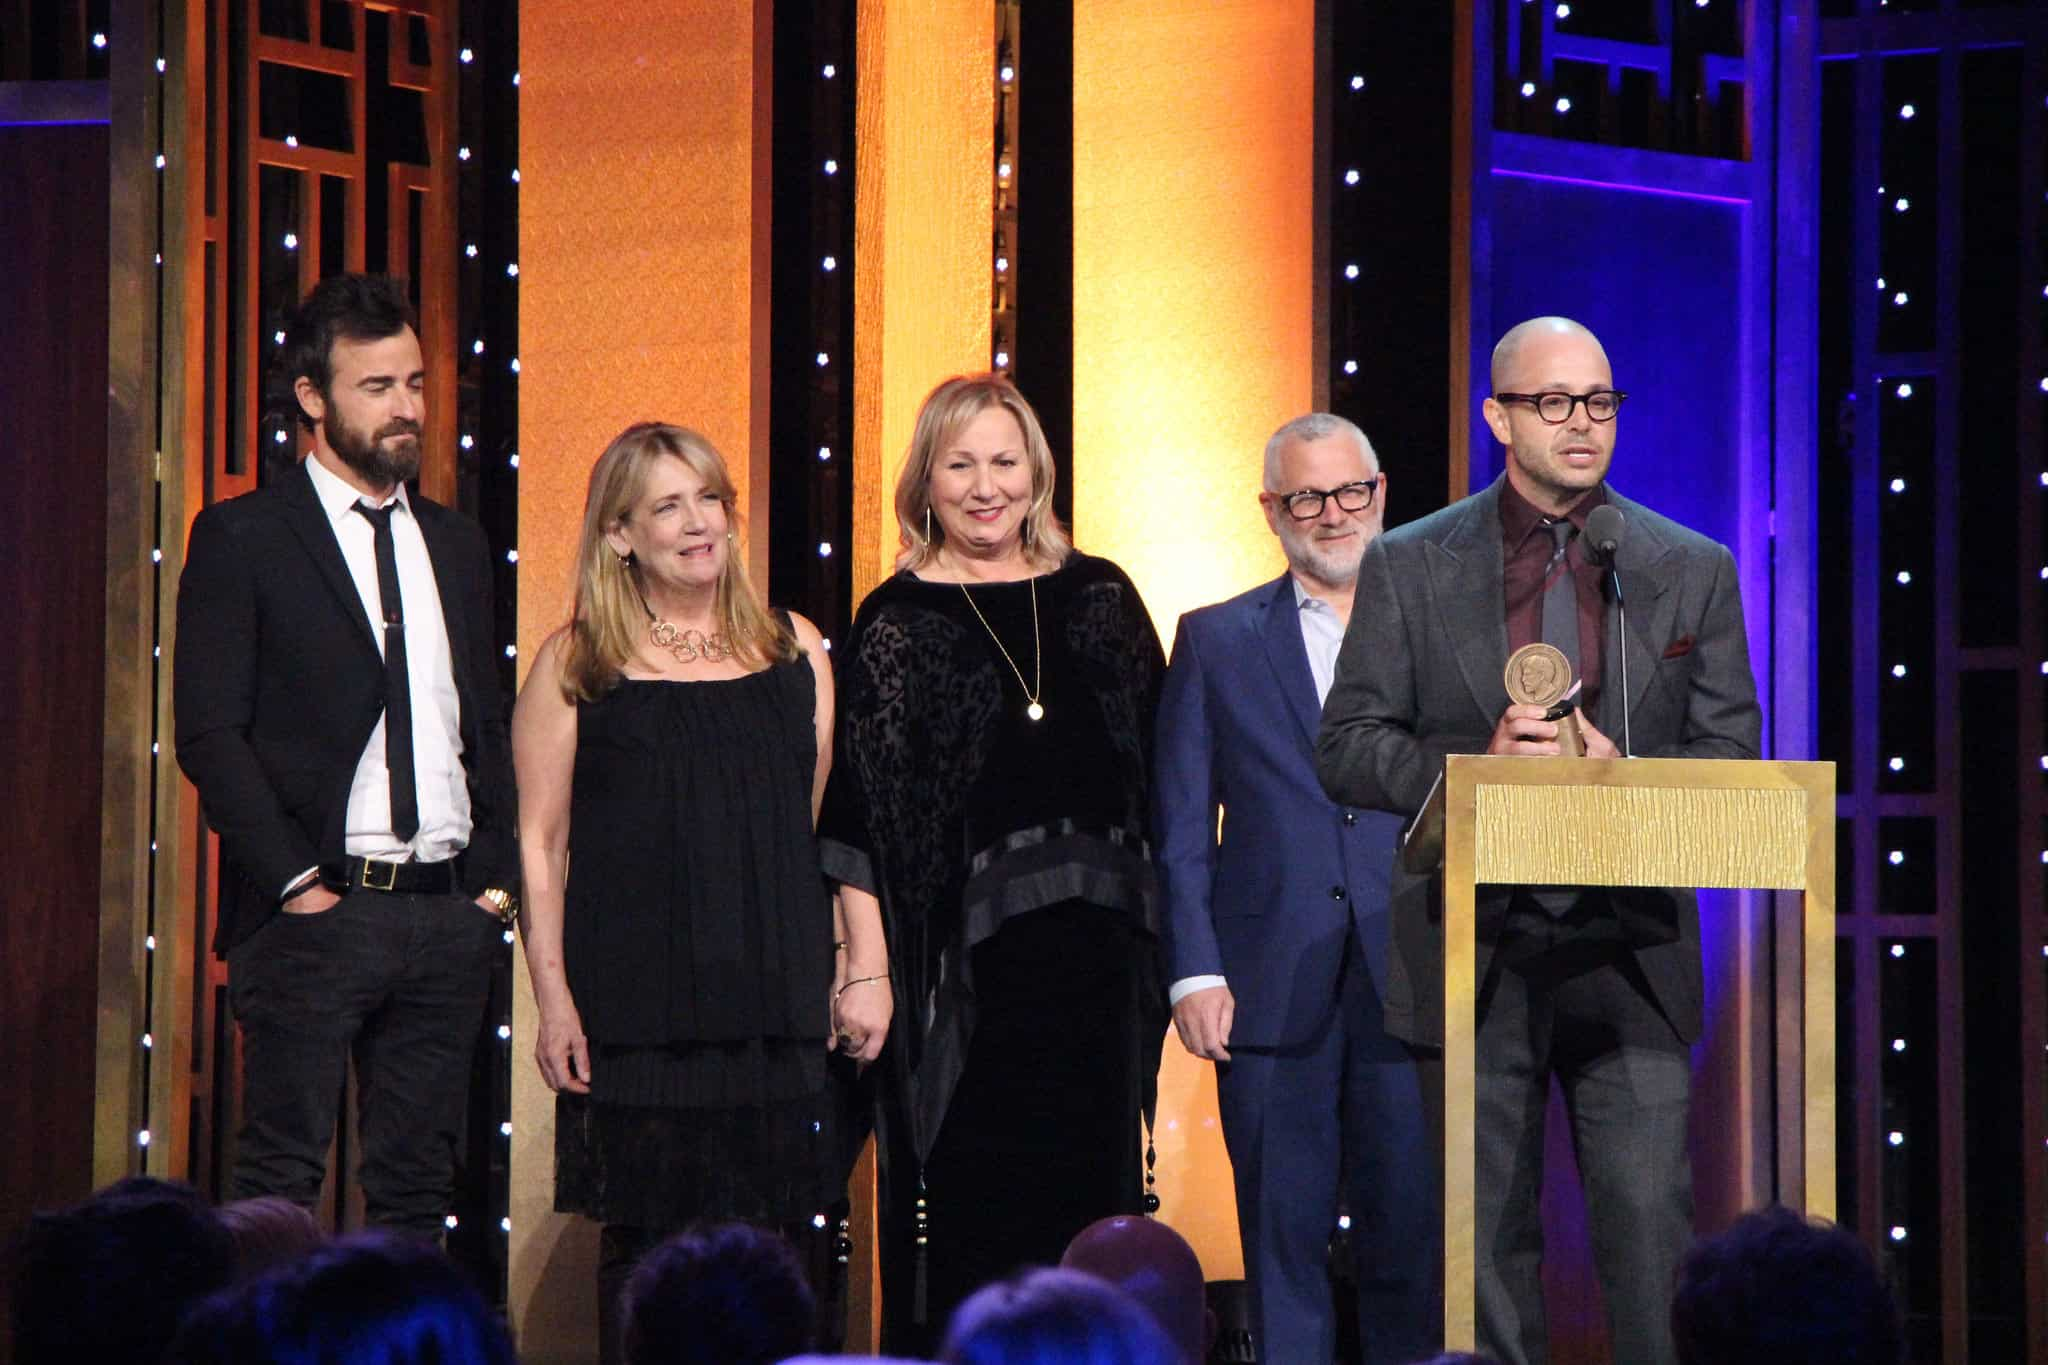 Producer/director Mimi Leder, center, worked on award-winning series The Leftovers.